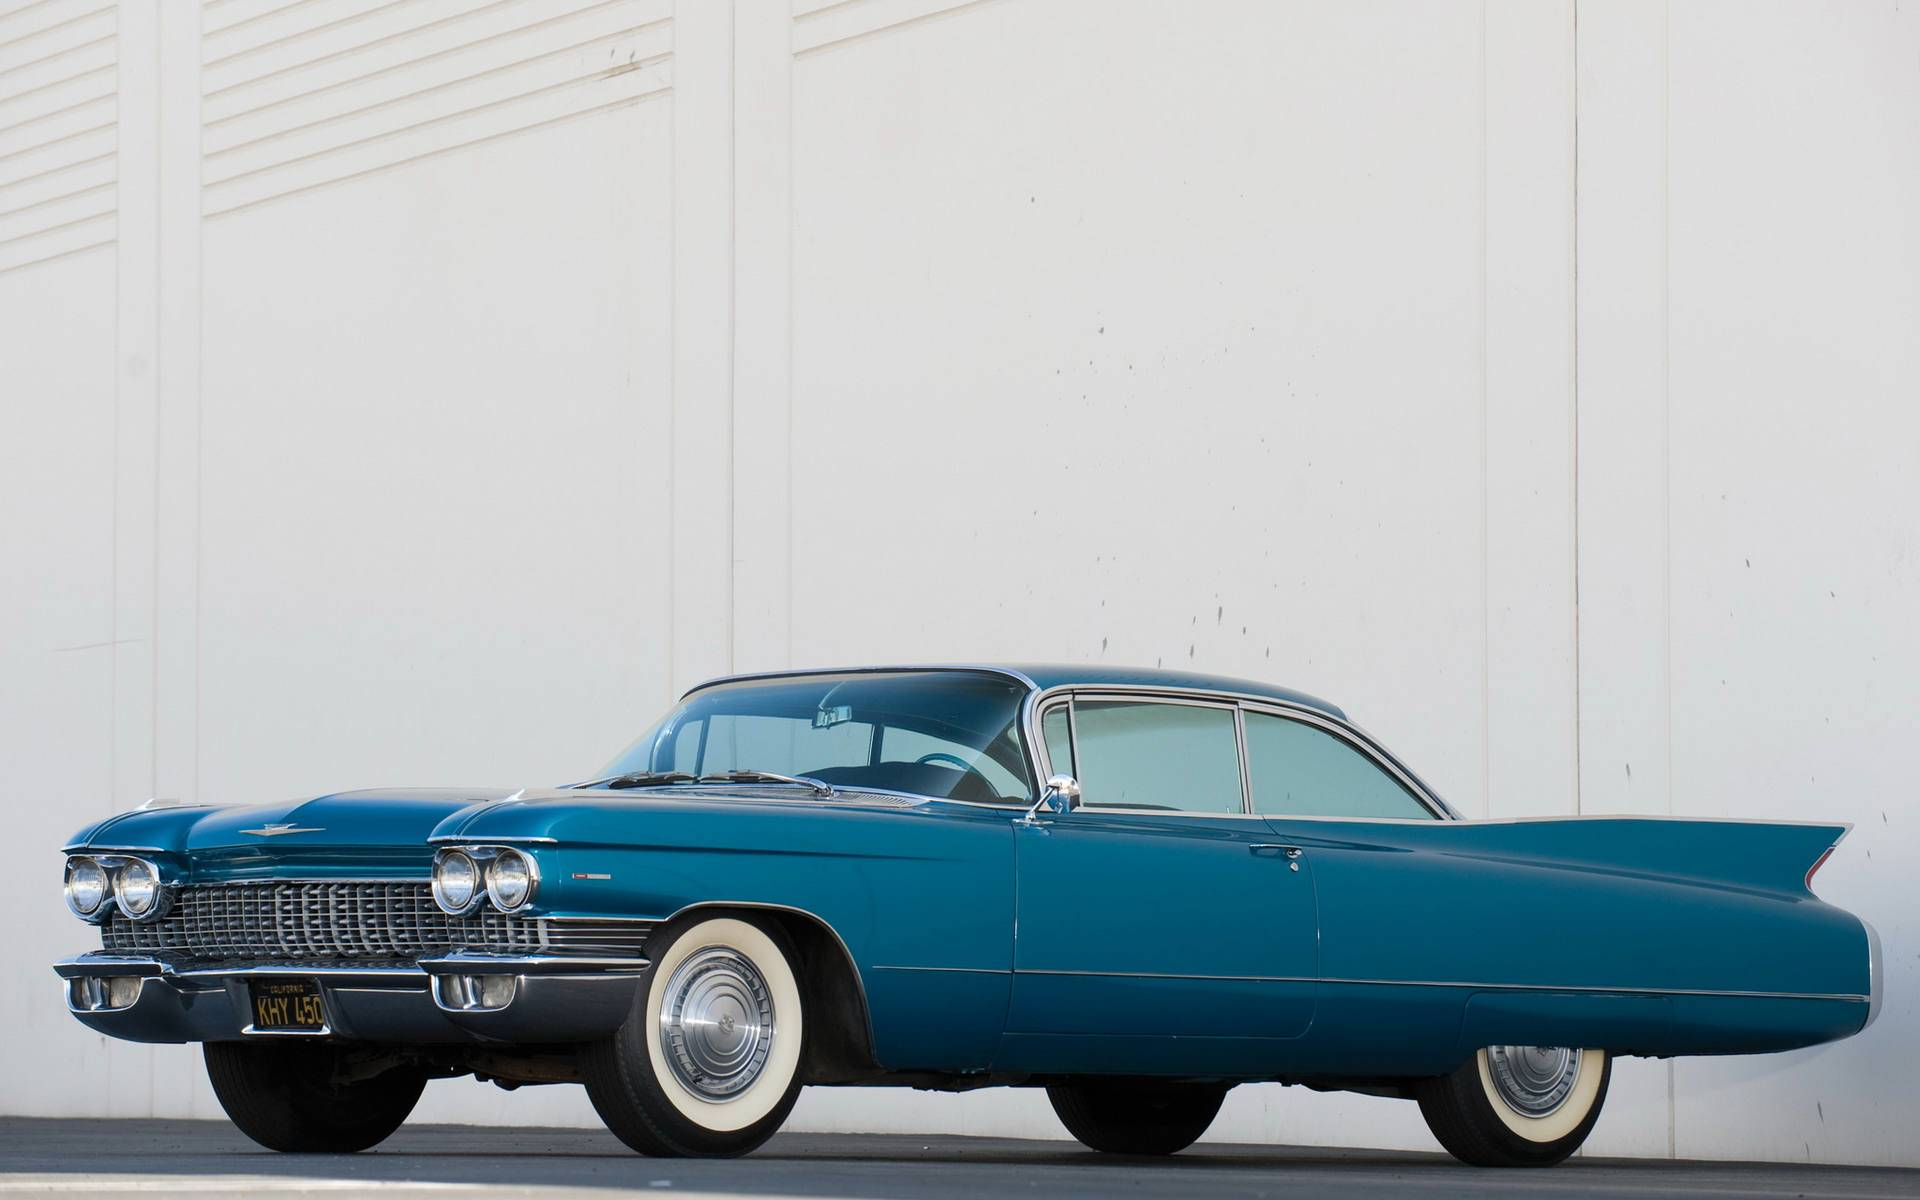 Old Cadillac Cars Hd Wallpapers Classic Cars Wallpapers Pack 2